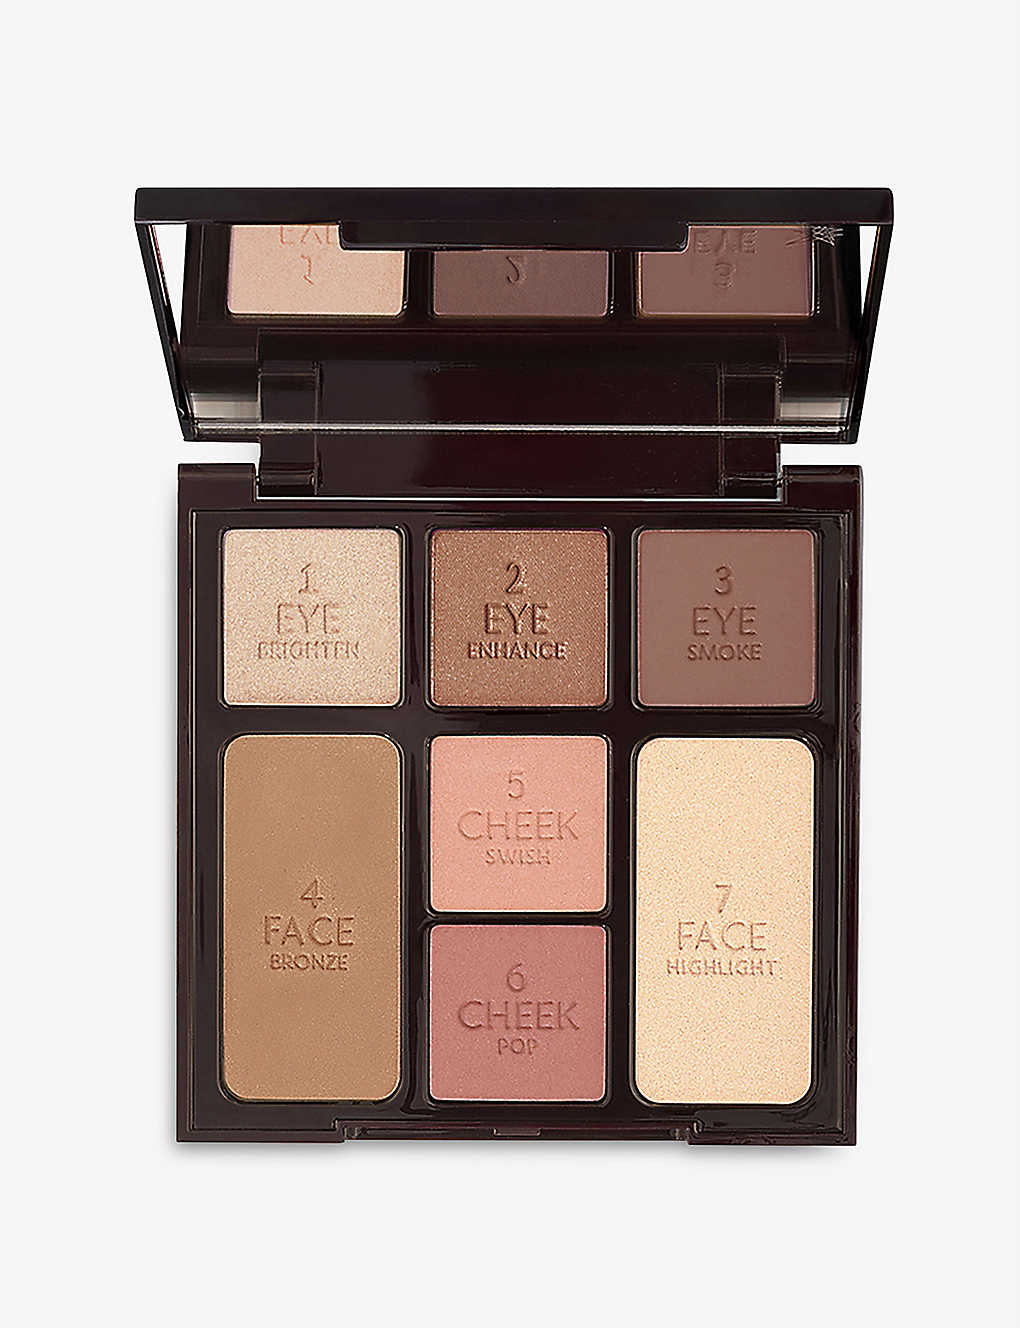 CHARLOTTE TILBURY: Stoned Rose Beauty Instant Look In A Palette